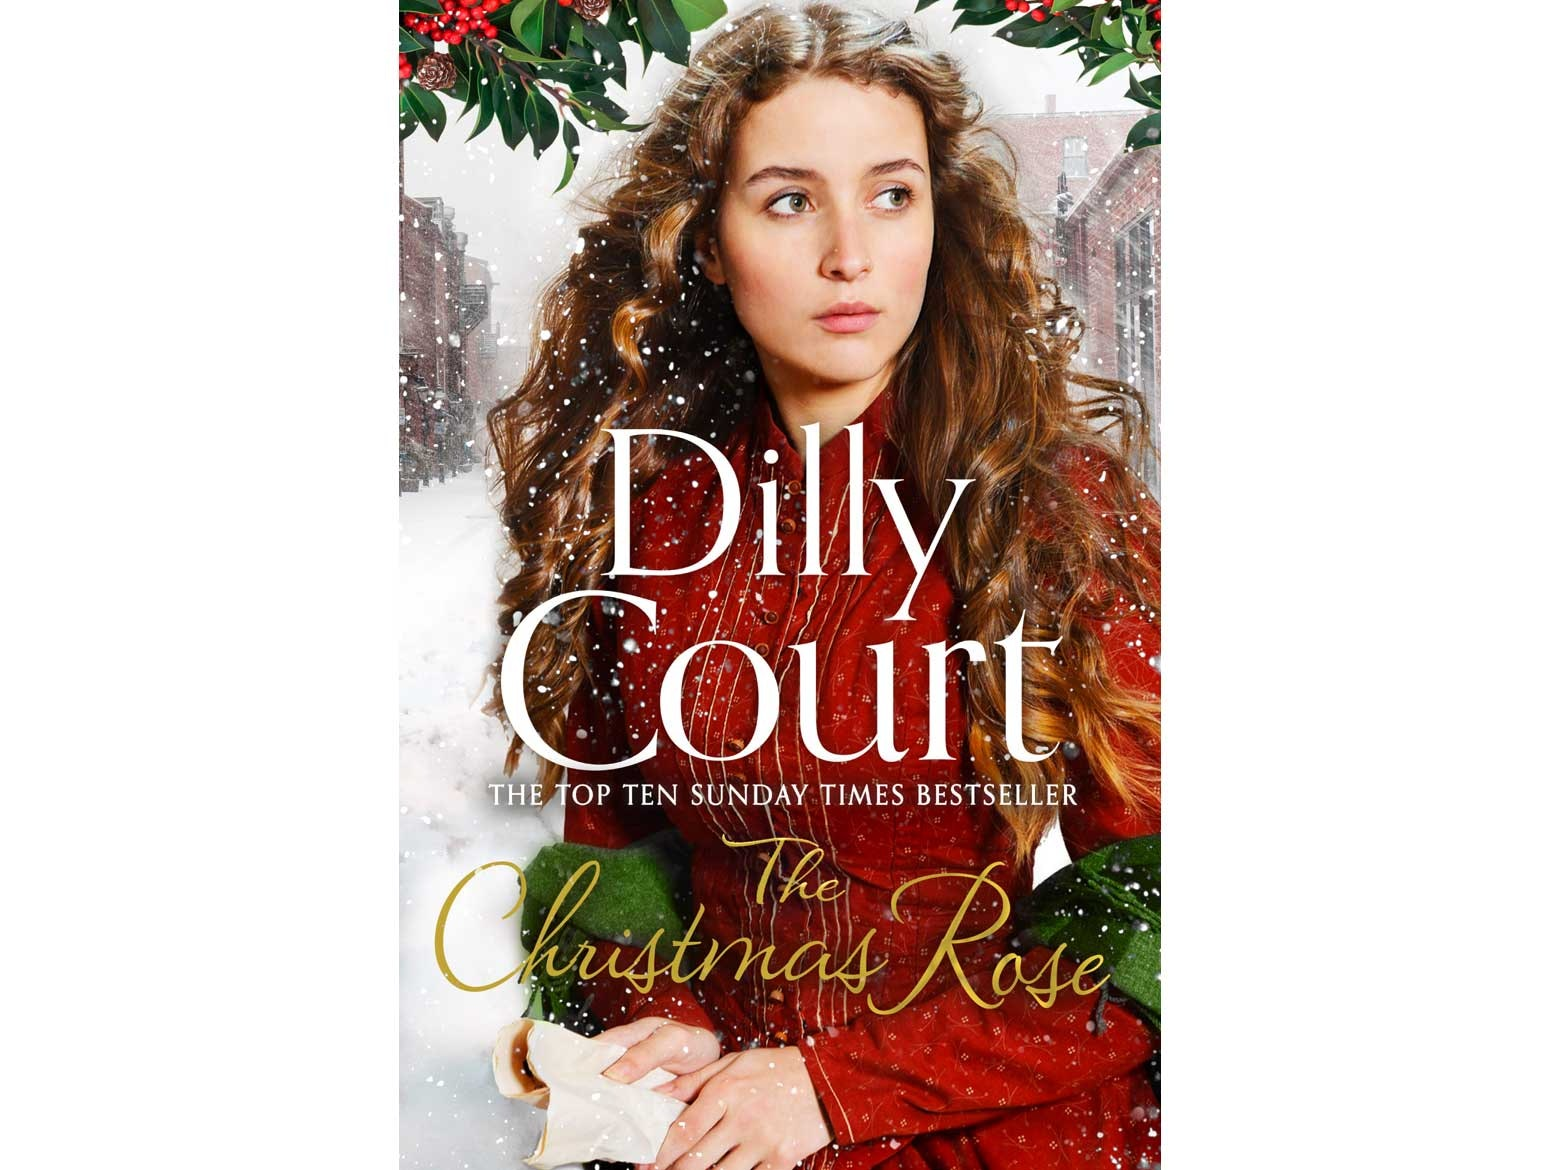 The Christmas Rose by Dilly Court  sweepstakes